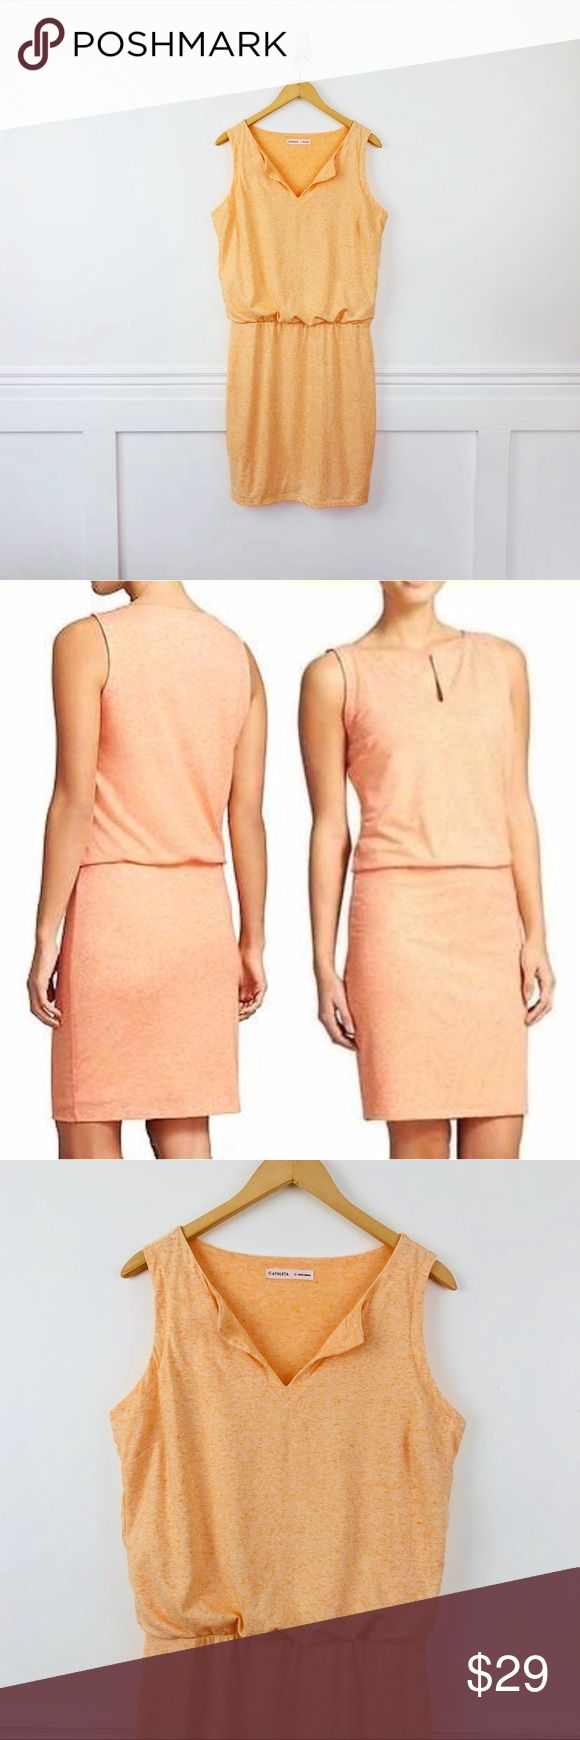 "Athleta Vida Dress Athleta Vida Dress in Tiger Lilly (peach)  Sleeveless blouson top and fitted skirt. Notched neckline, elastic waist. Lined.  Polyester, linen and spandex.   Size M  Bust 20.5"" Waist 15"" Length 40"" Athleta Dresses"